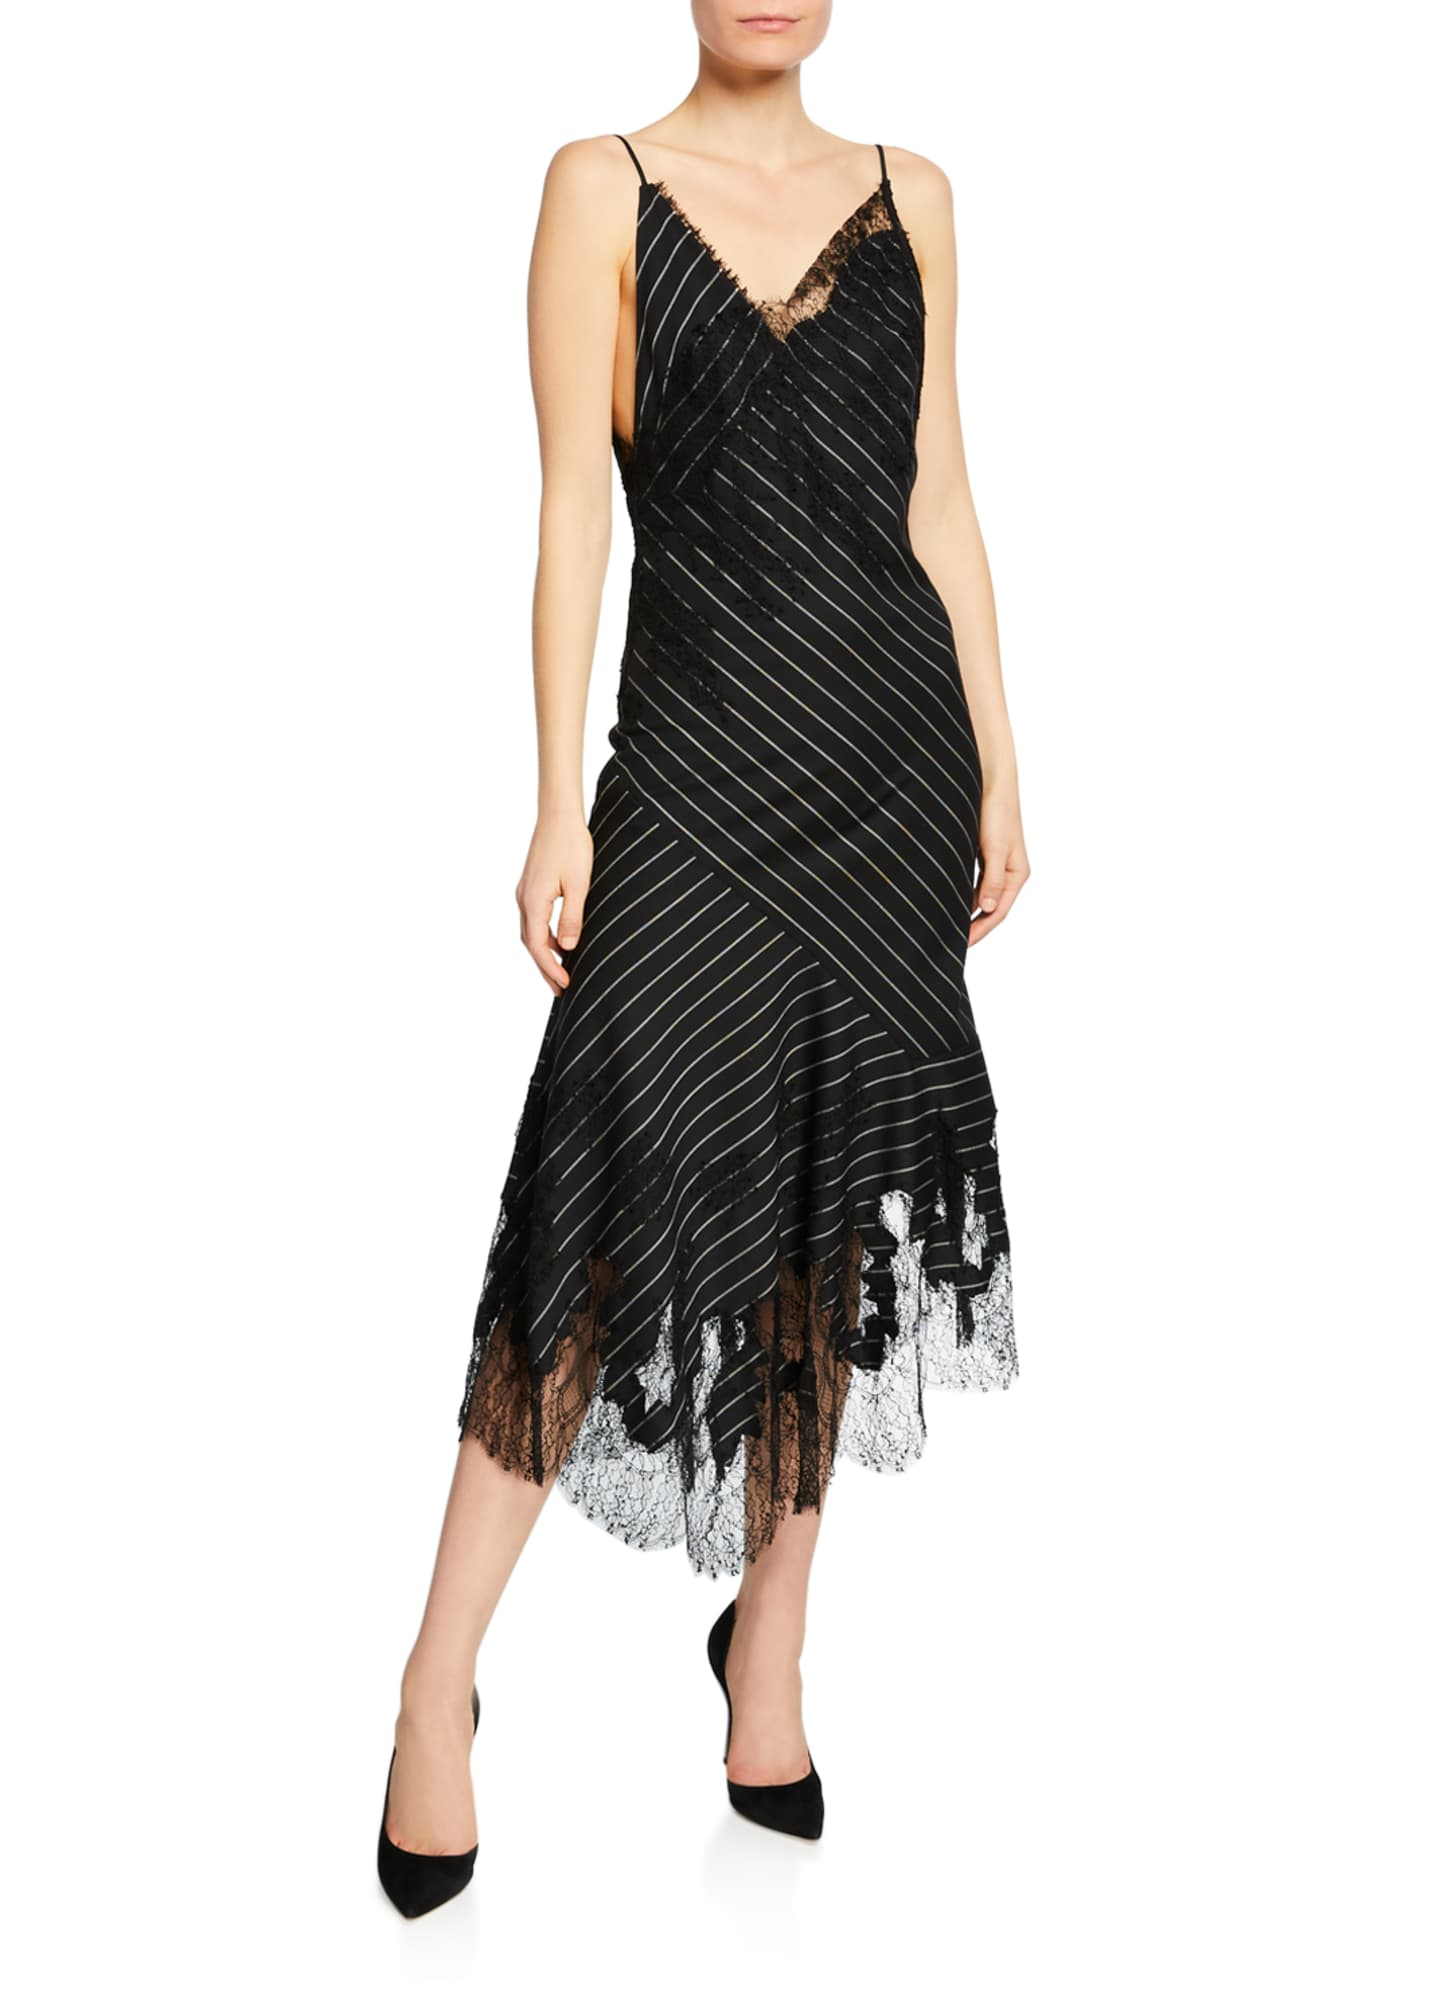 Jason Wu Collection Lacy Pinstriped Strappy Cocktail Dress